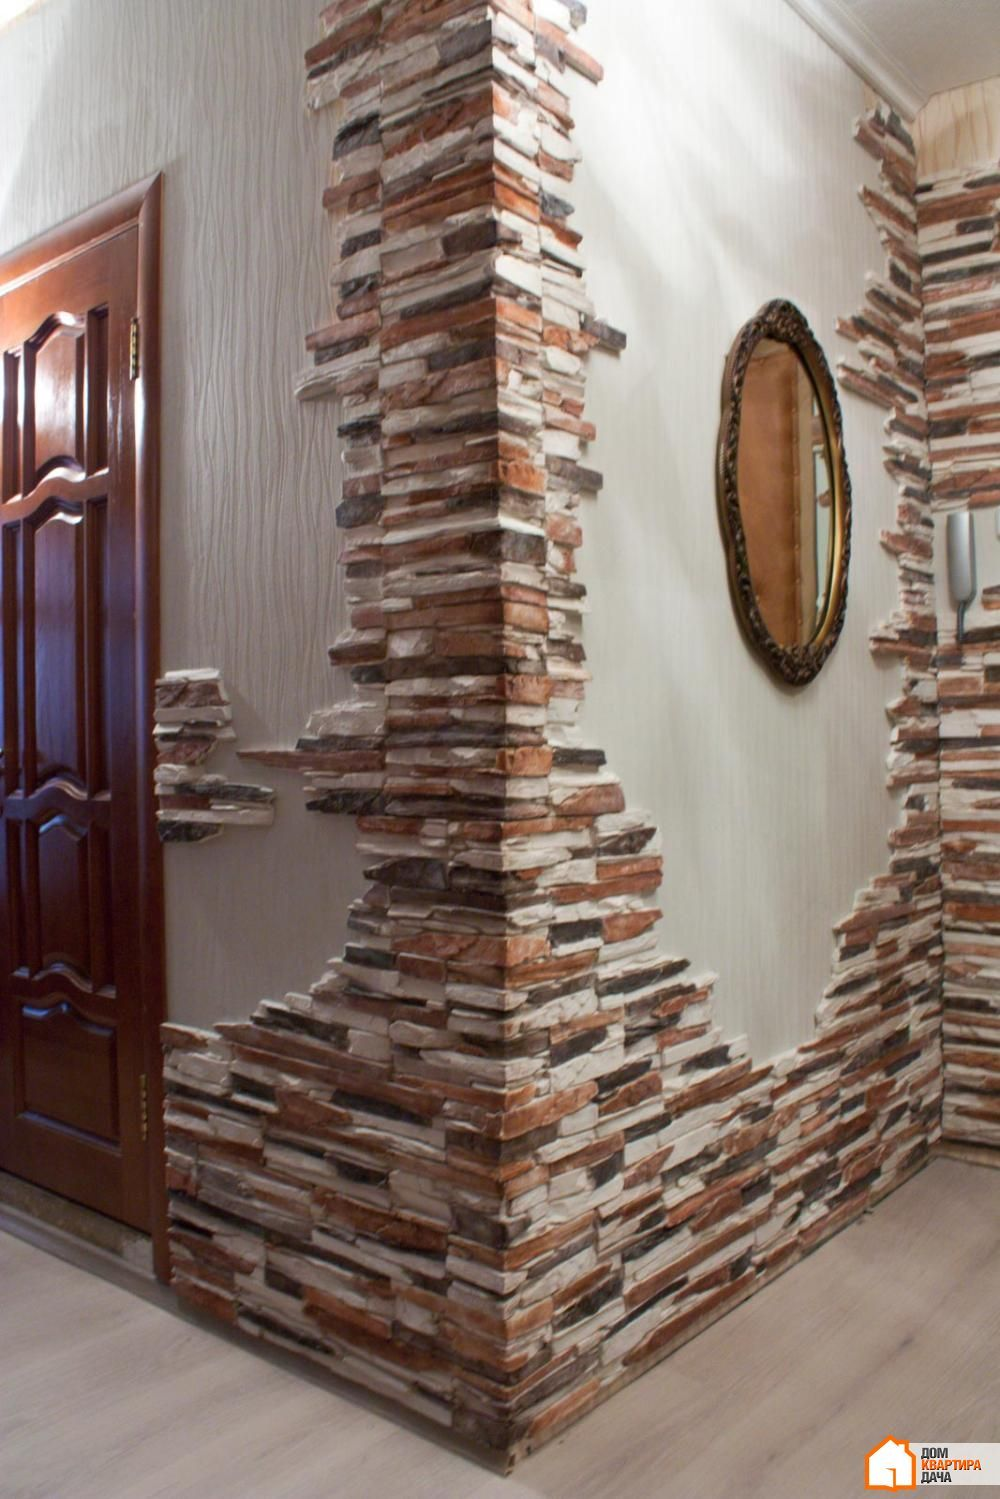 15 Artistic Stacked Stone Wall To Catch Your Attention With Images Brick Decor Stone Wall Design Wall Design